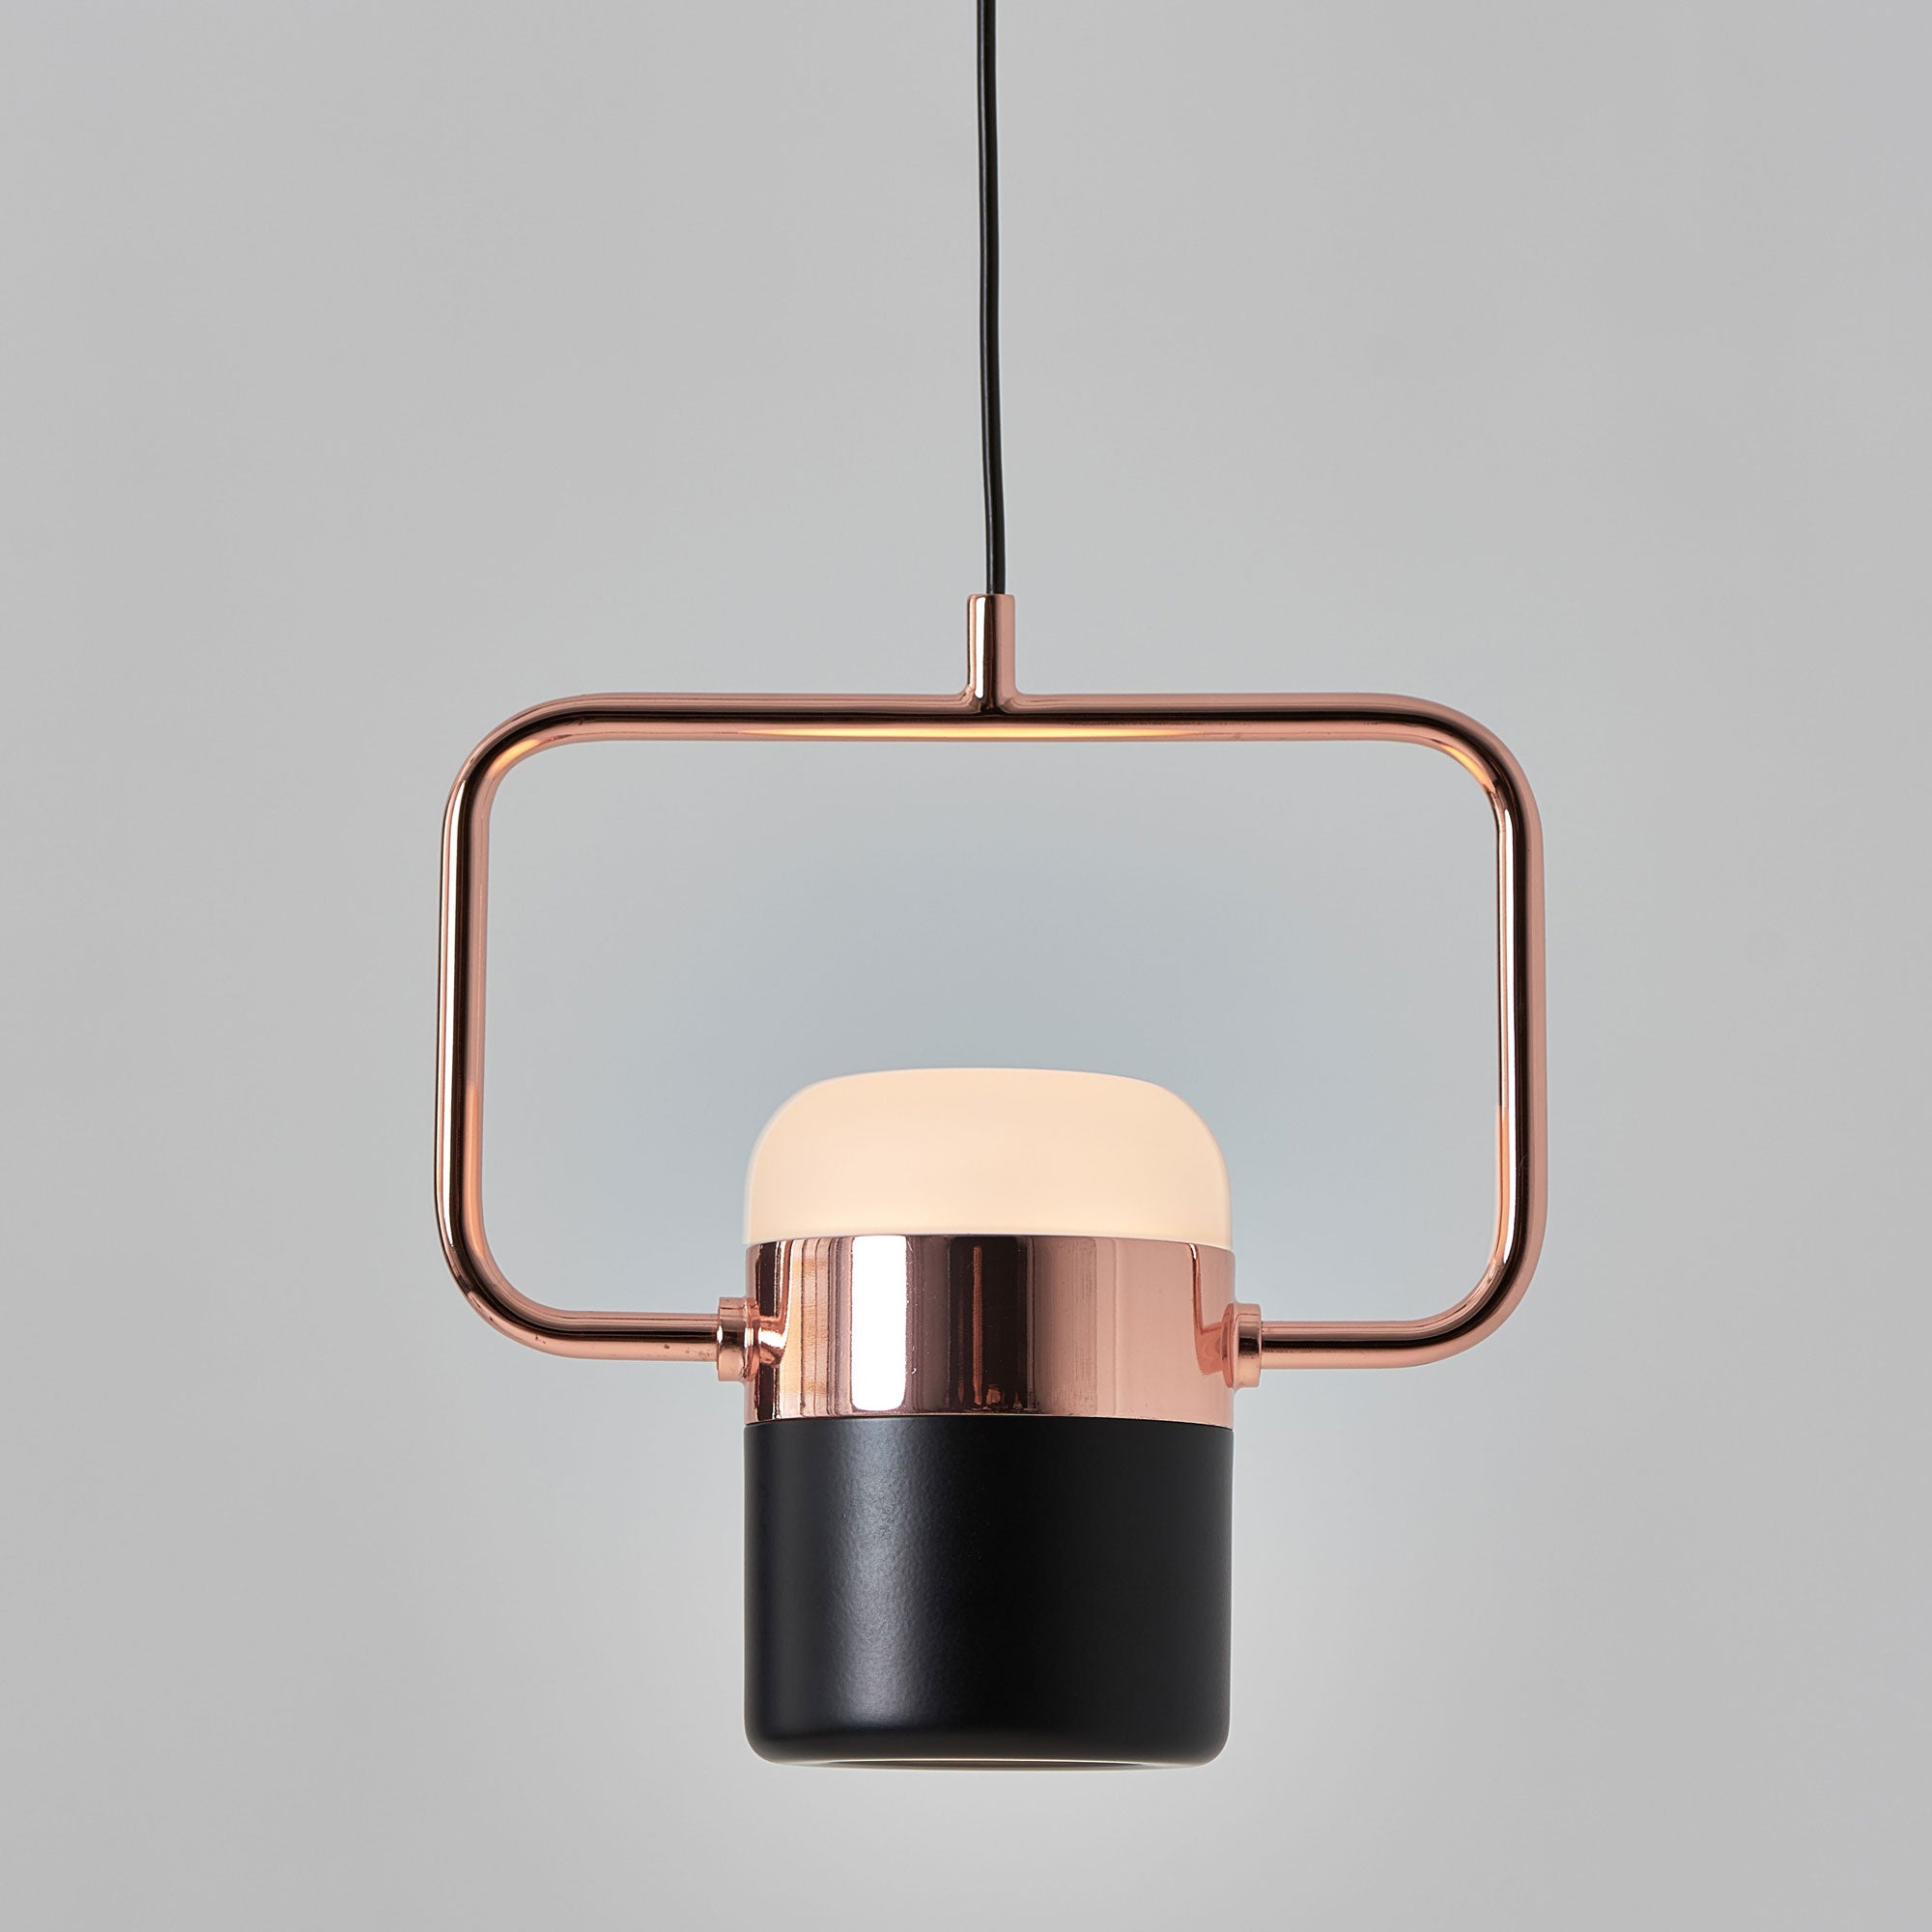 Ling H Pendant - Matte Black / Copper